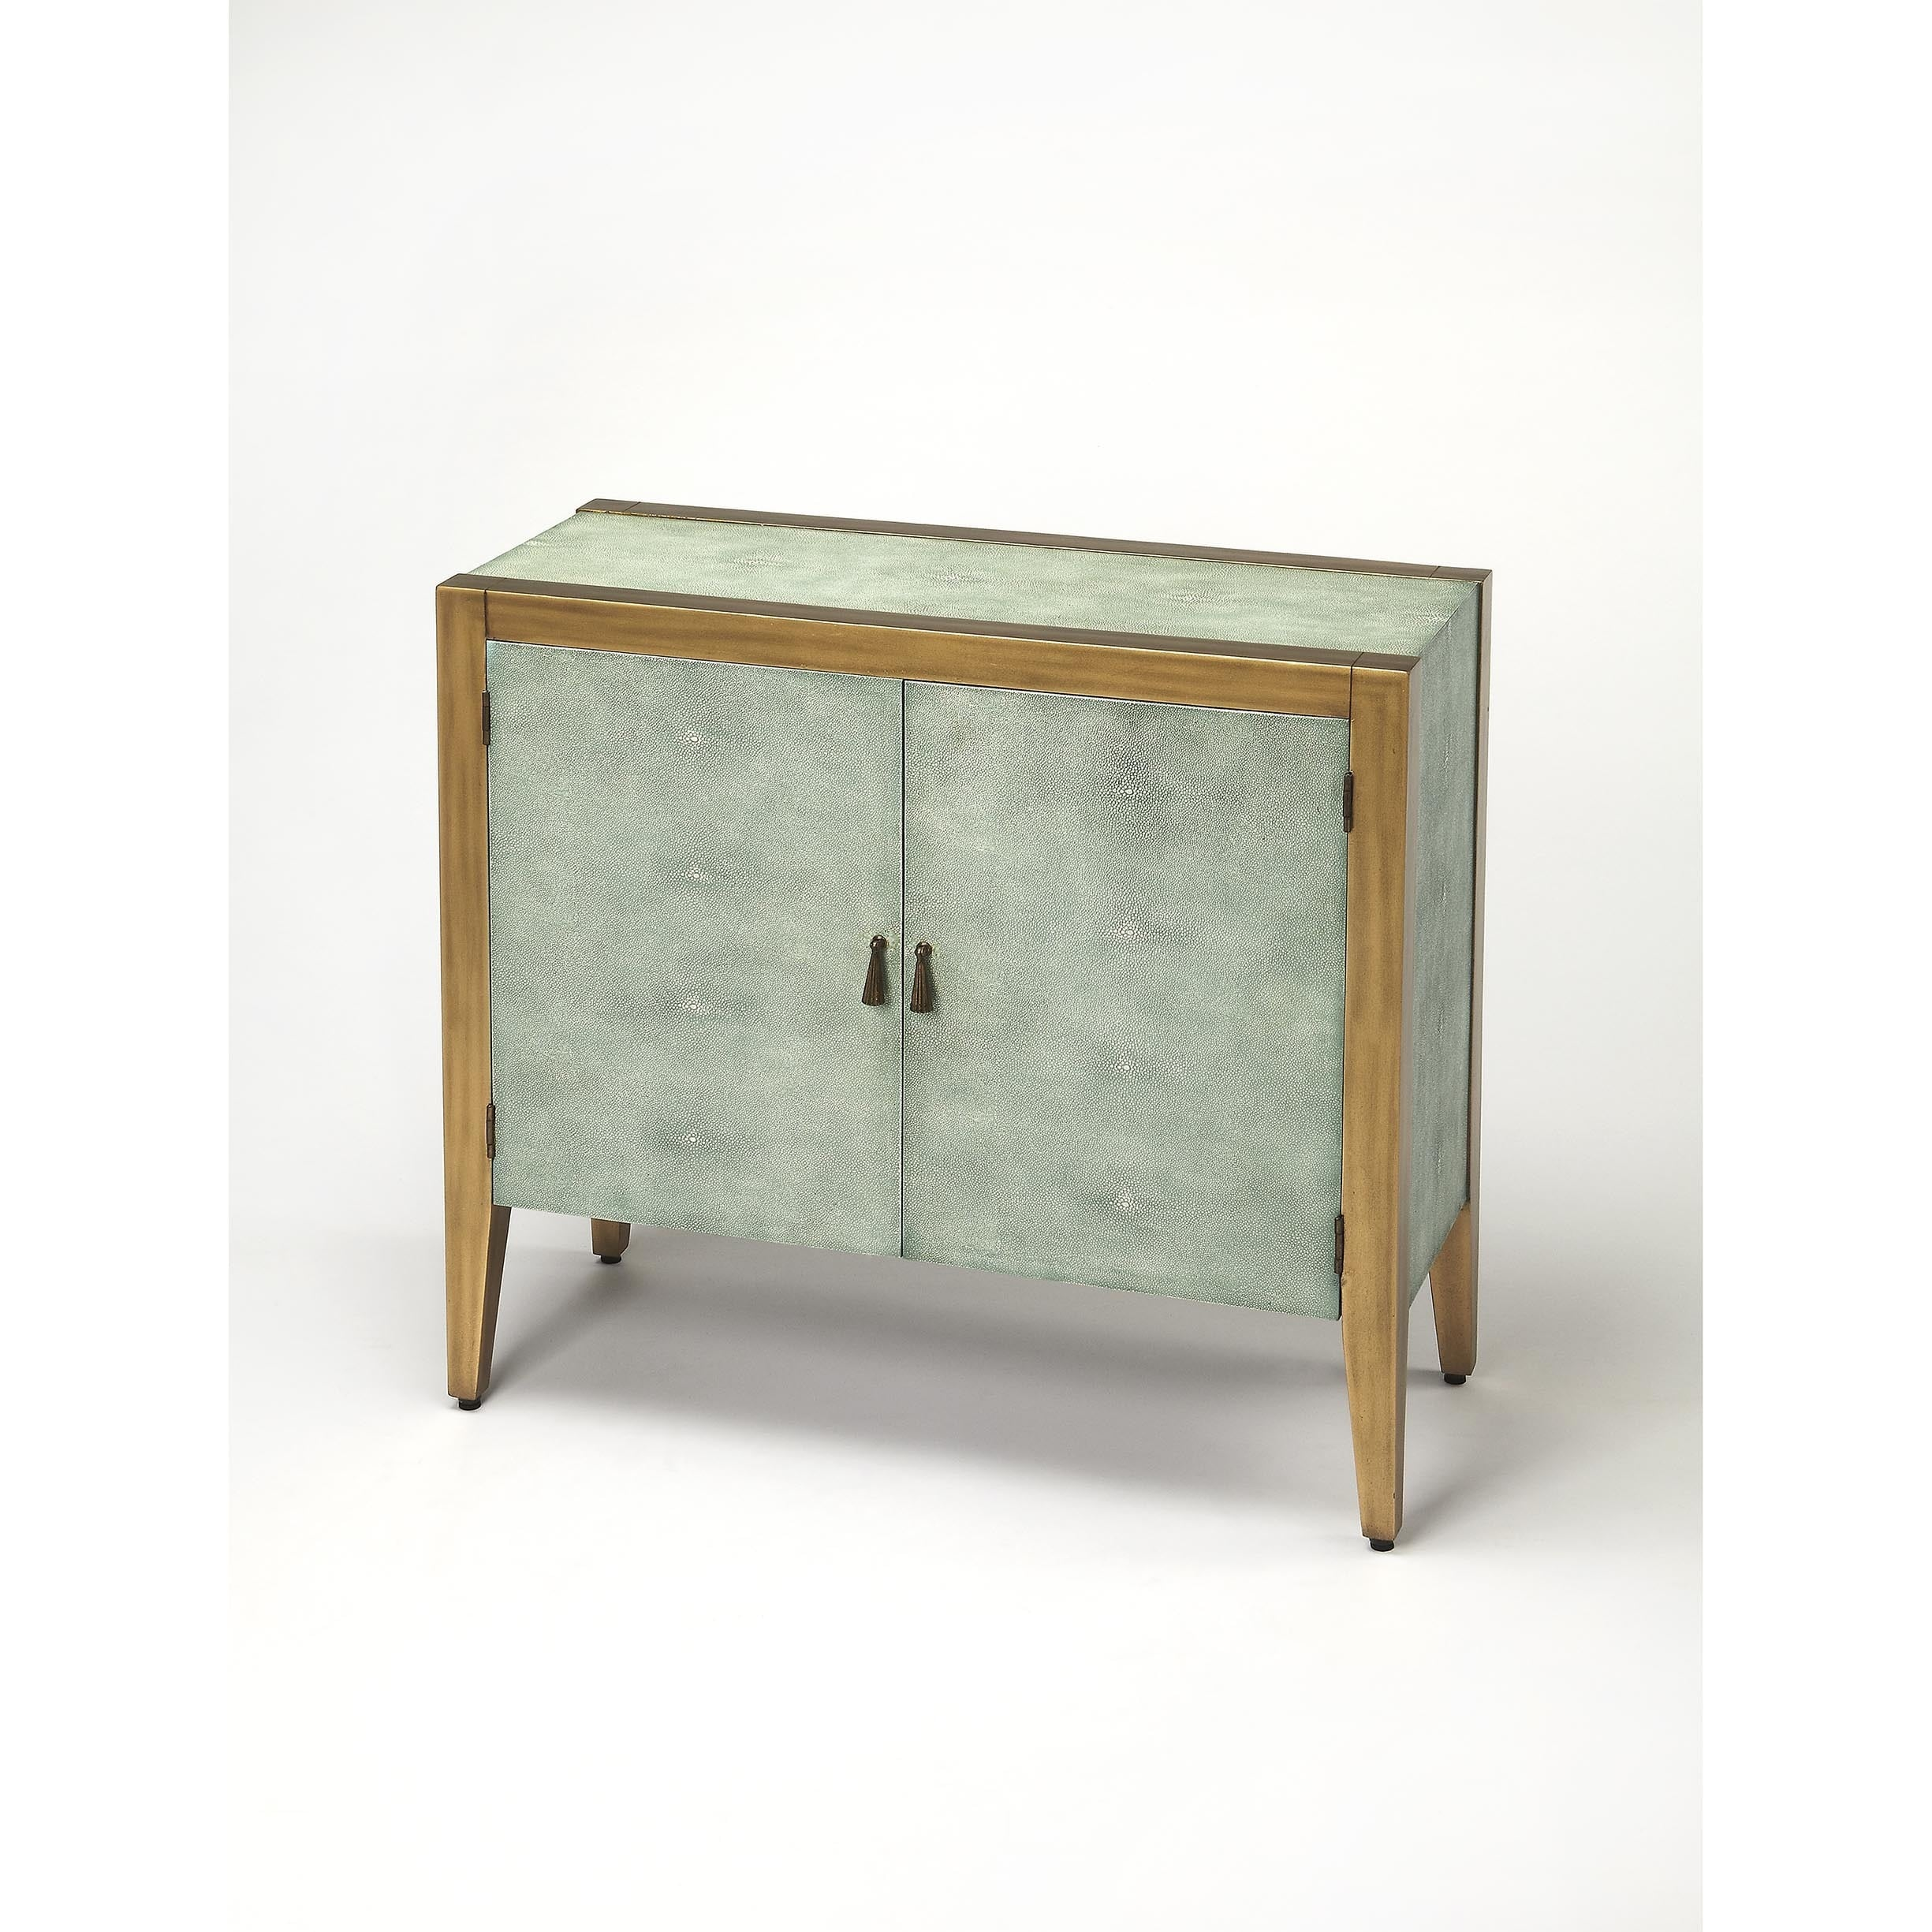 Shop butler apollonia shagreen console cabinet free shipping today overstock com 12074655